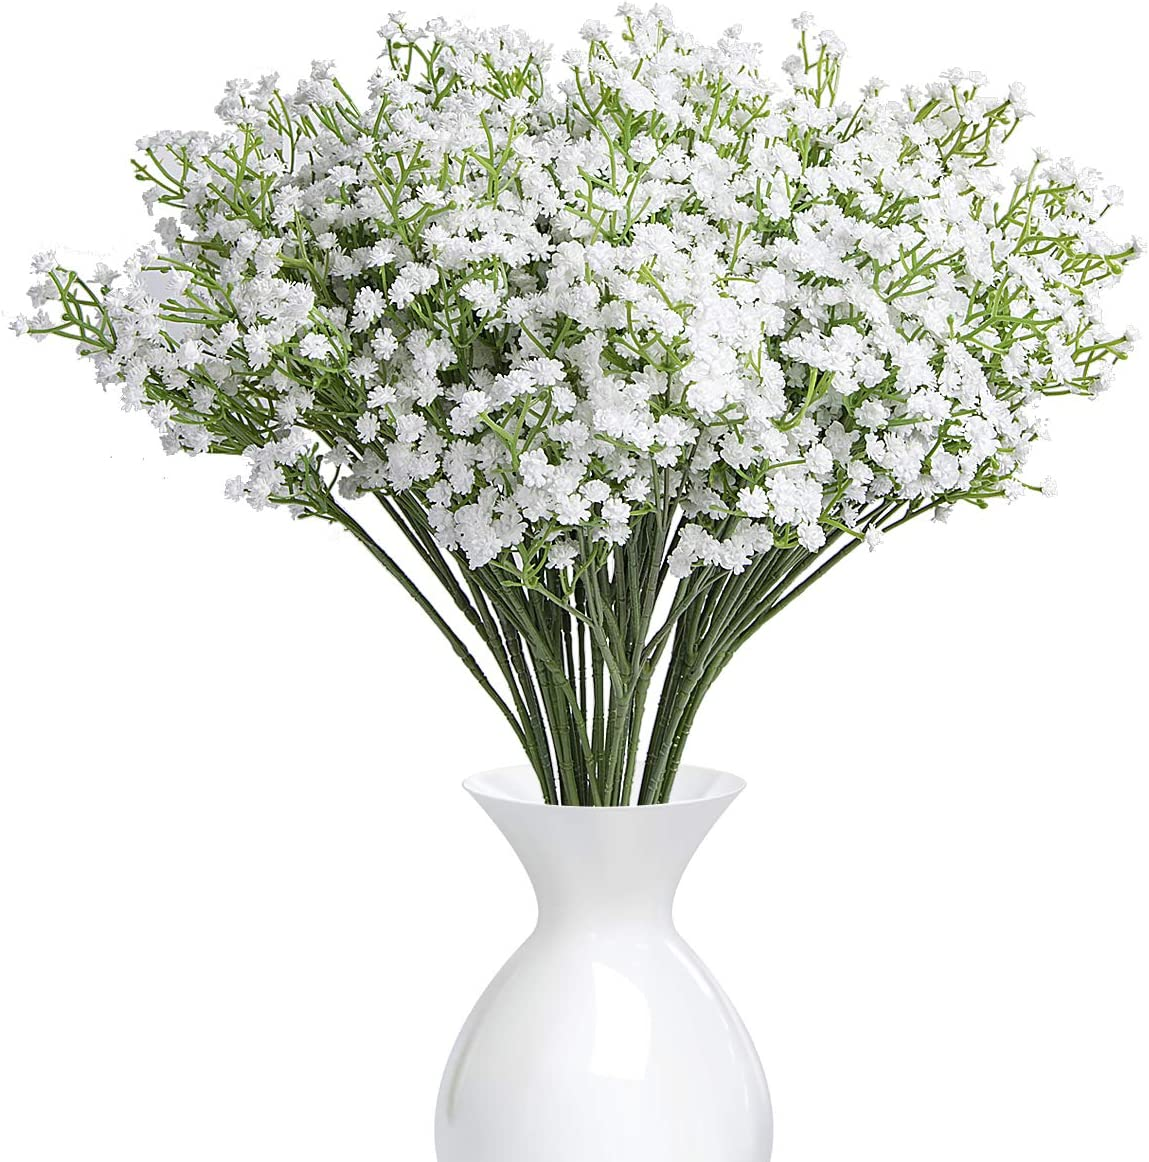 Amazon Com Ysber 10pcs Baby Breath Gypsophila Artificial Fake Silk Plants Wedding Party Decoration Real Touch Flowers Diy Home Garden White Furniture Decor